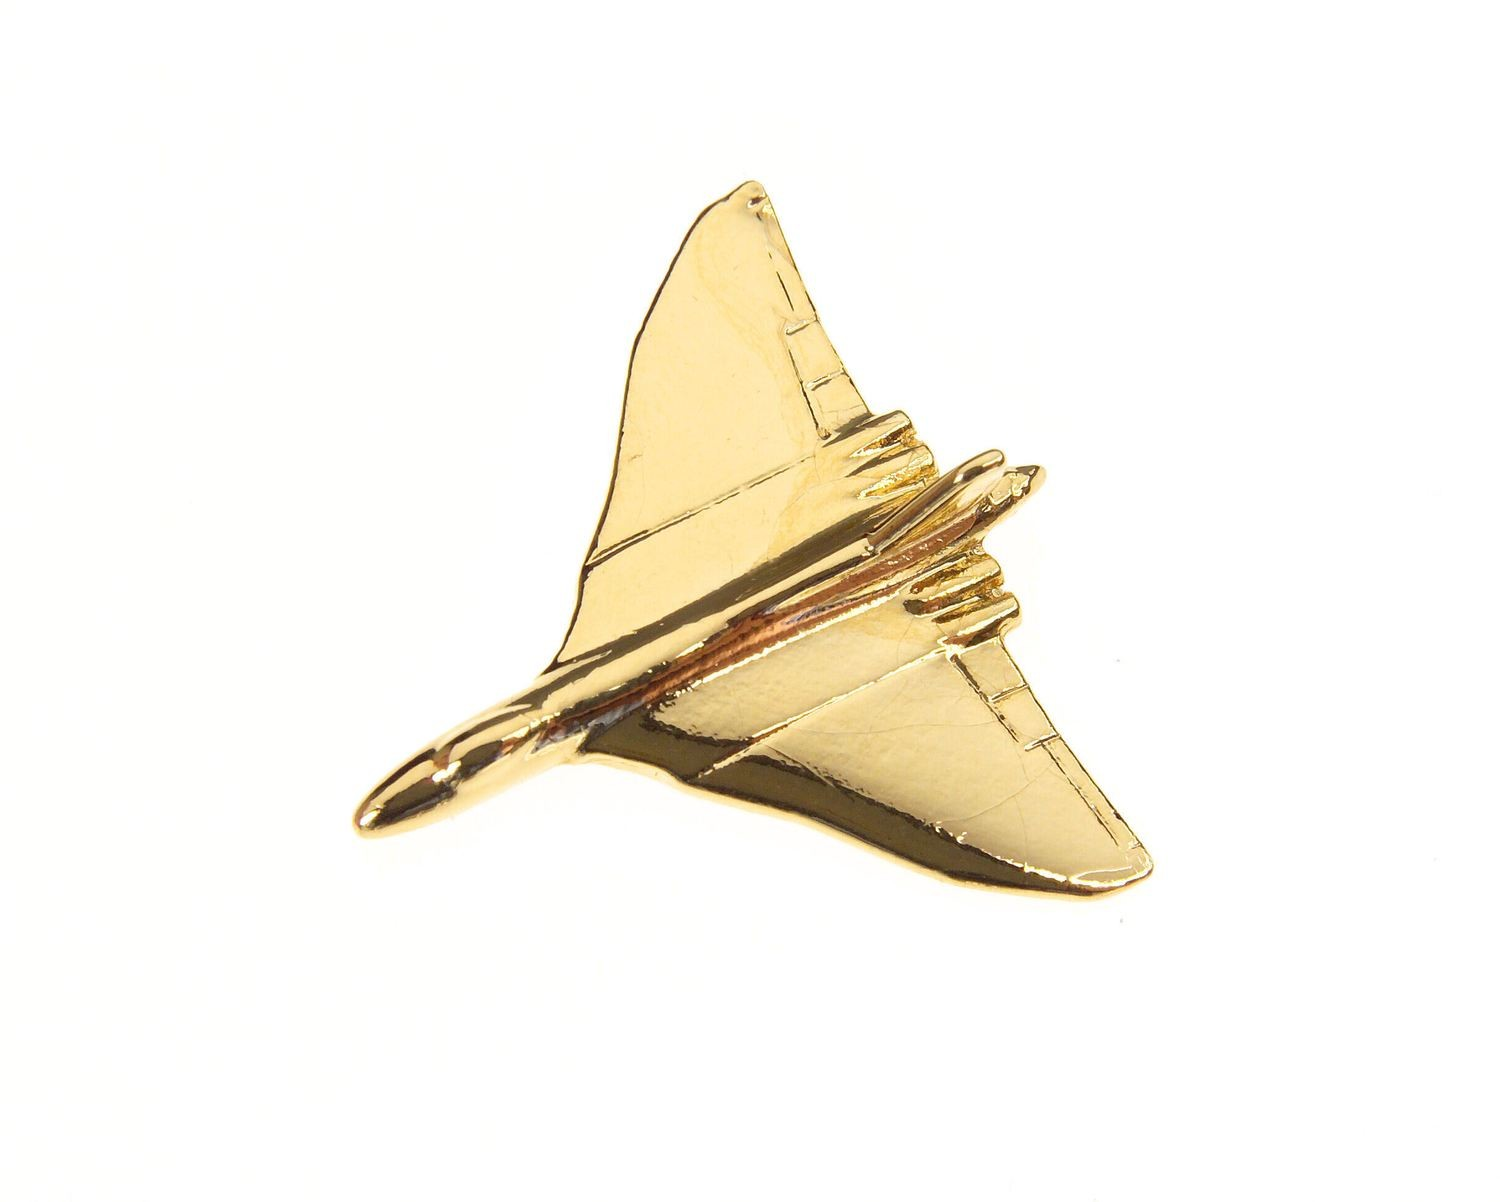 Vulcan Gold Plated Tie / Lapel Pin